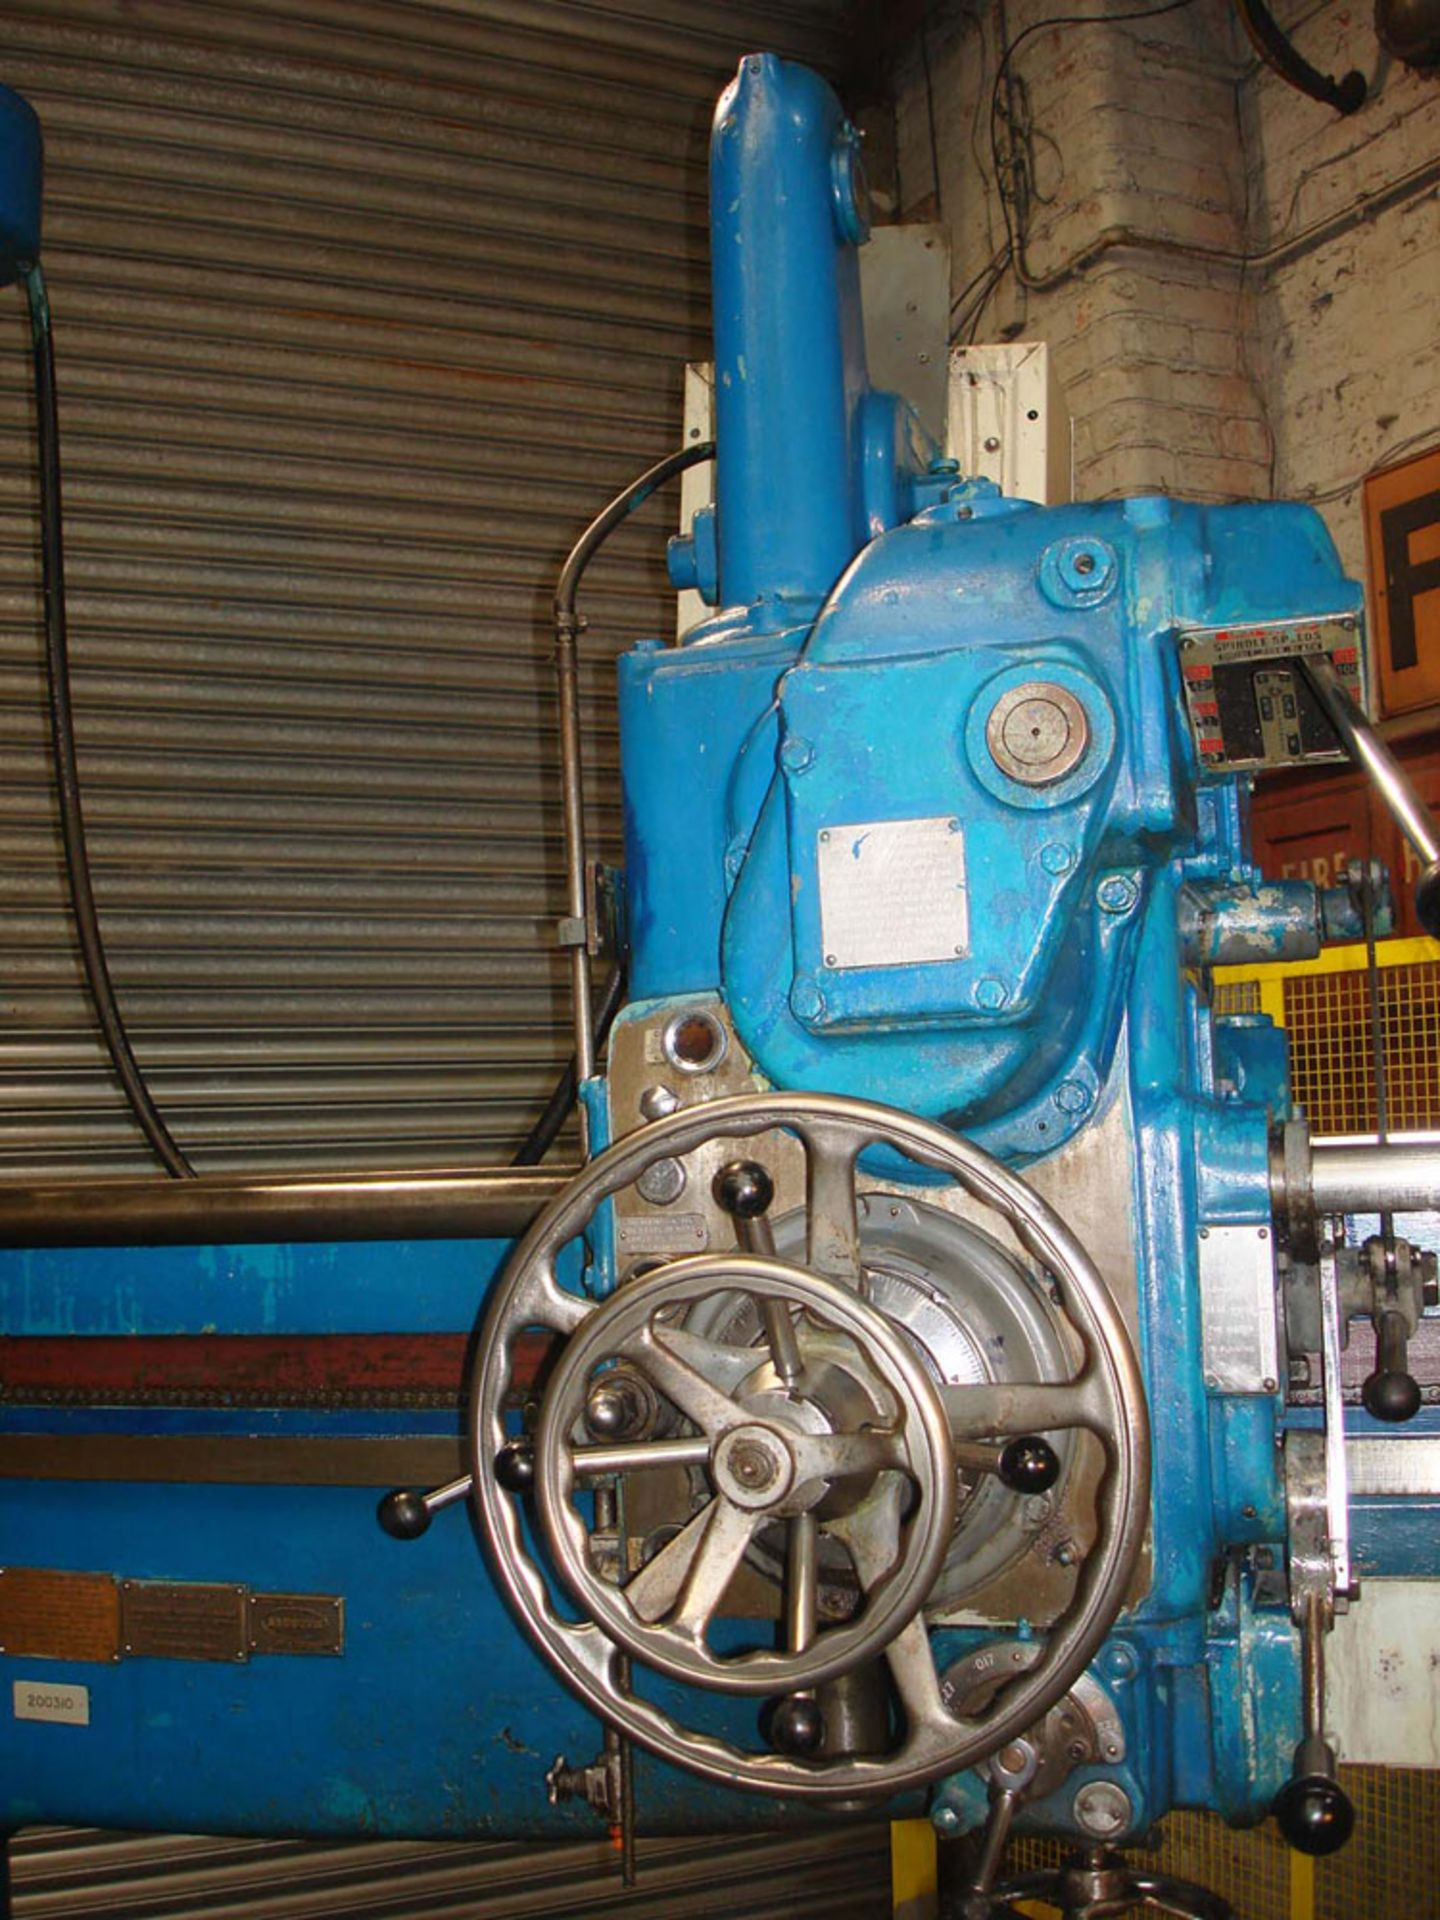 Asquith OD1 6ft Radial Arm Drill. Arm lenght 6ft. Spindle 5 Morse Taper. Speeds 8-800rpm. Box Table. - Image 2 of 7